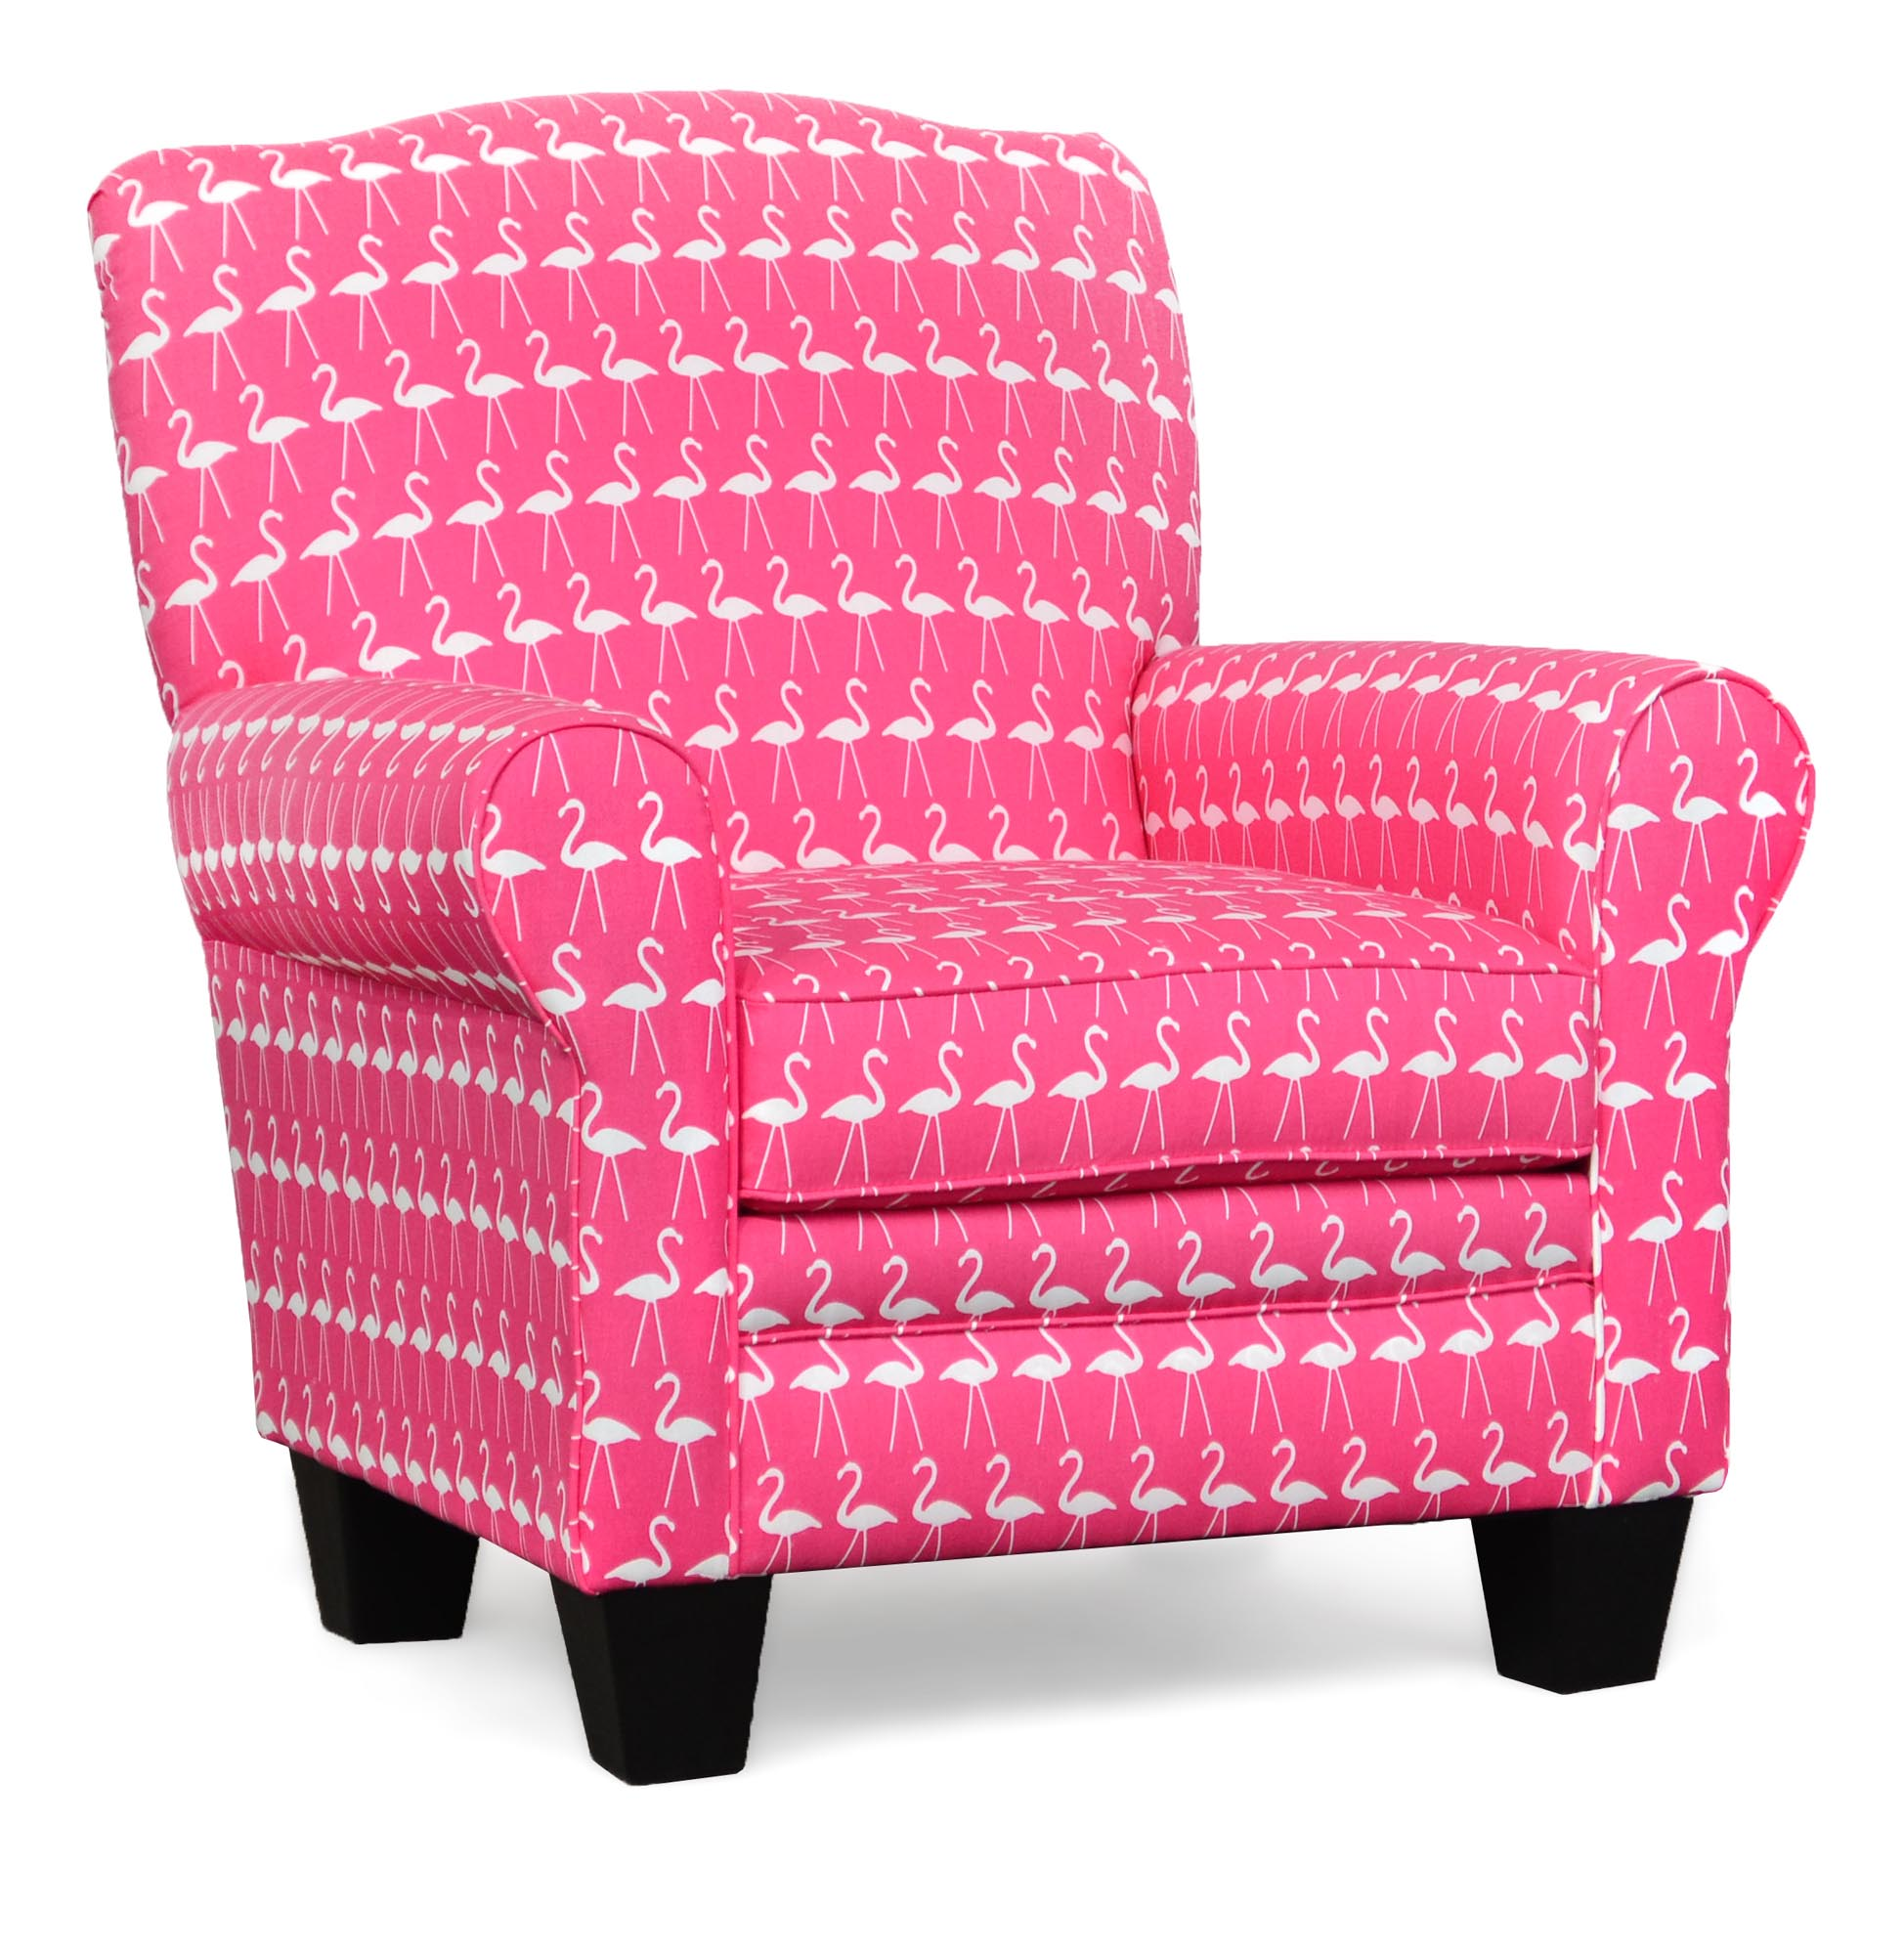 500 Quinn Accent Chair $439